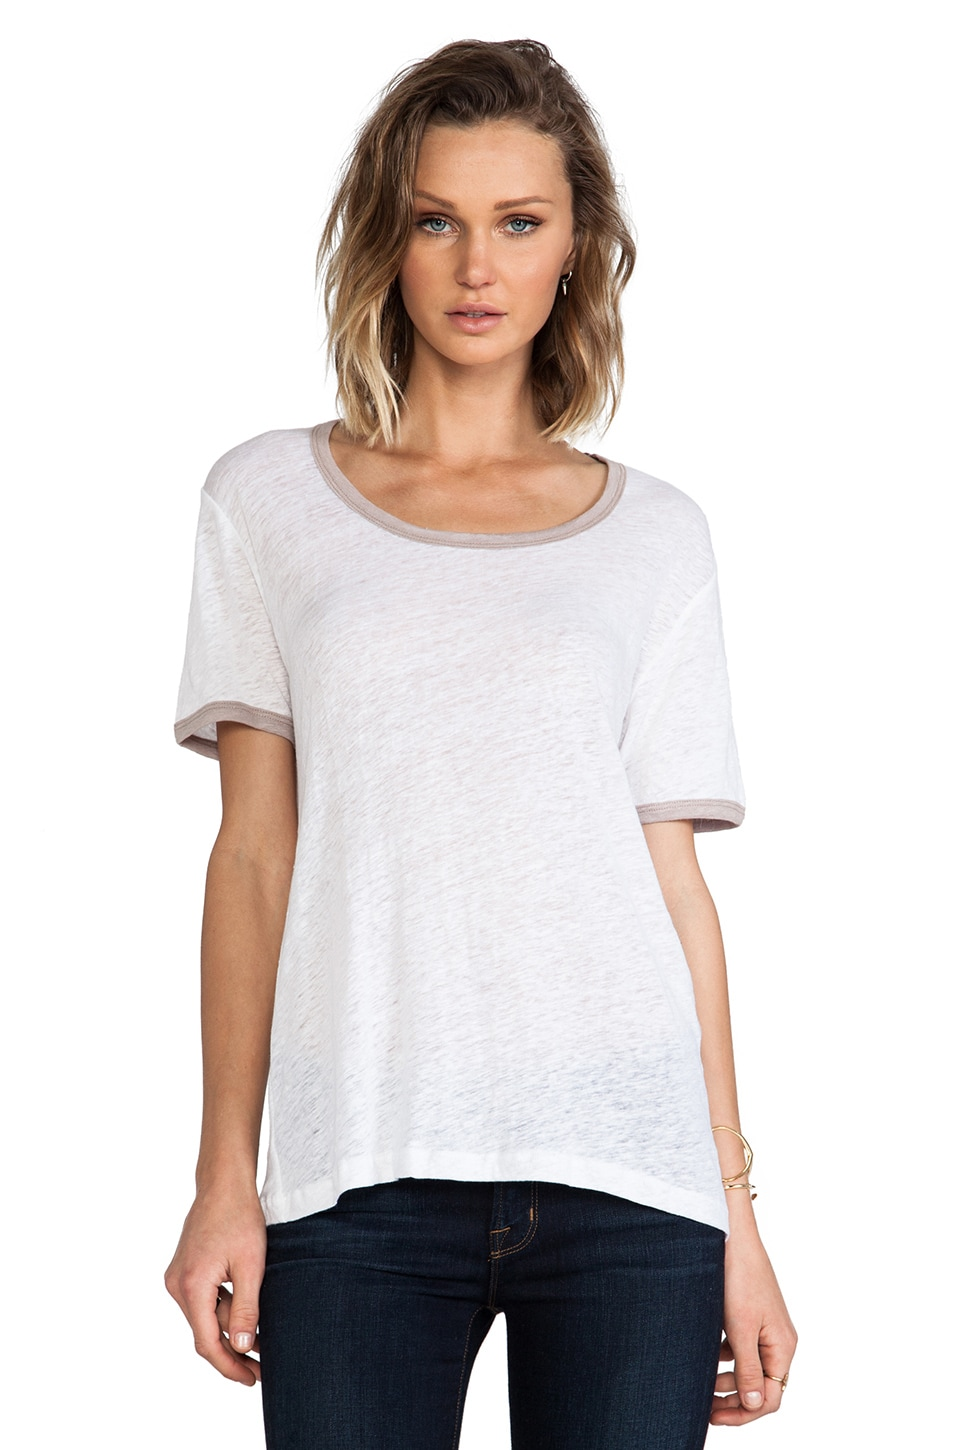 MONROW Colorblock Ringer Tee in White & Grey